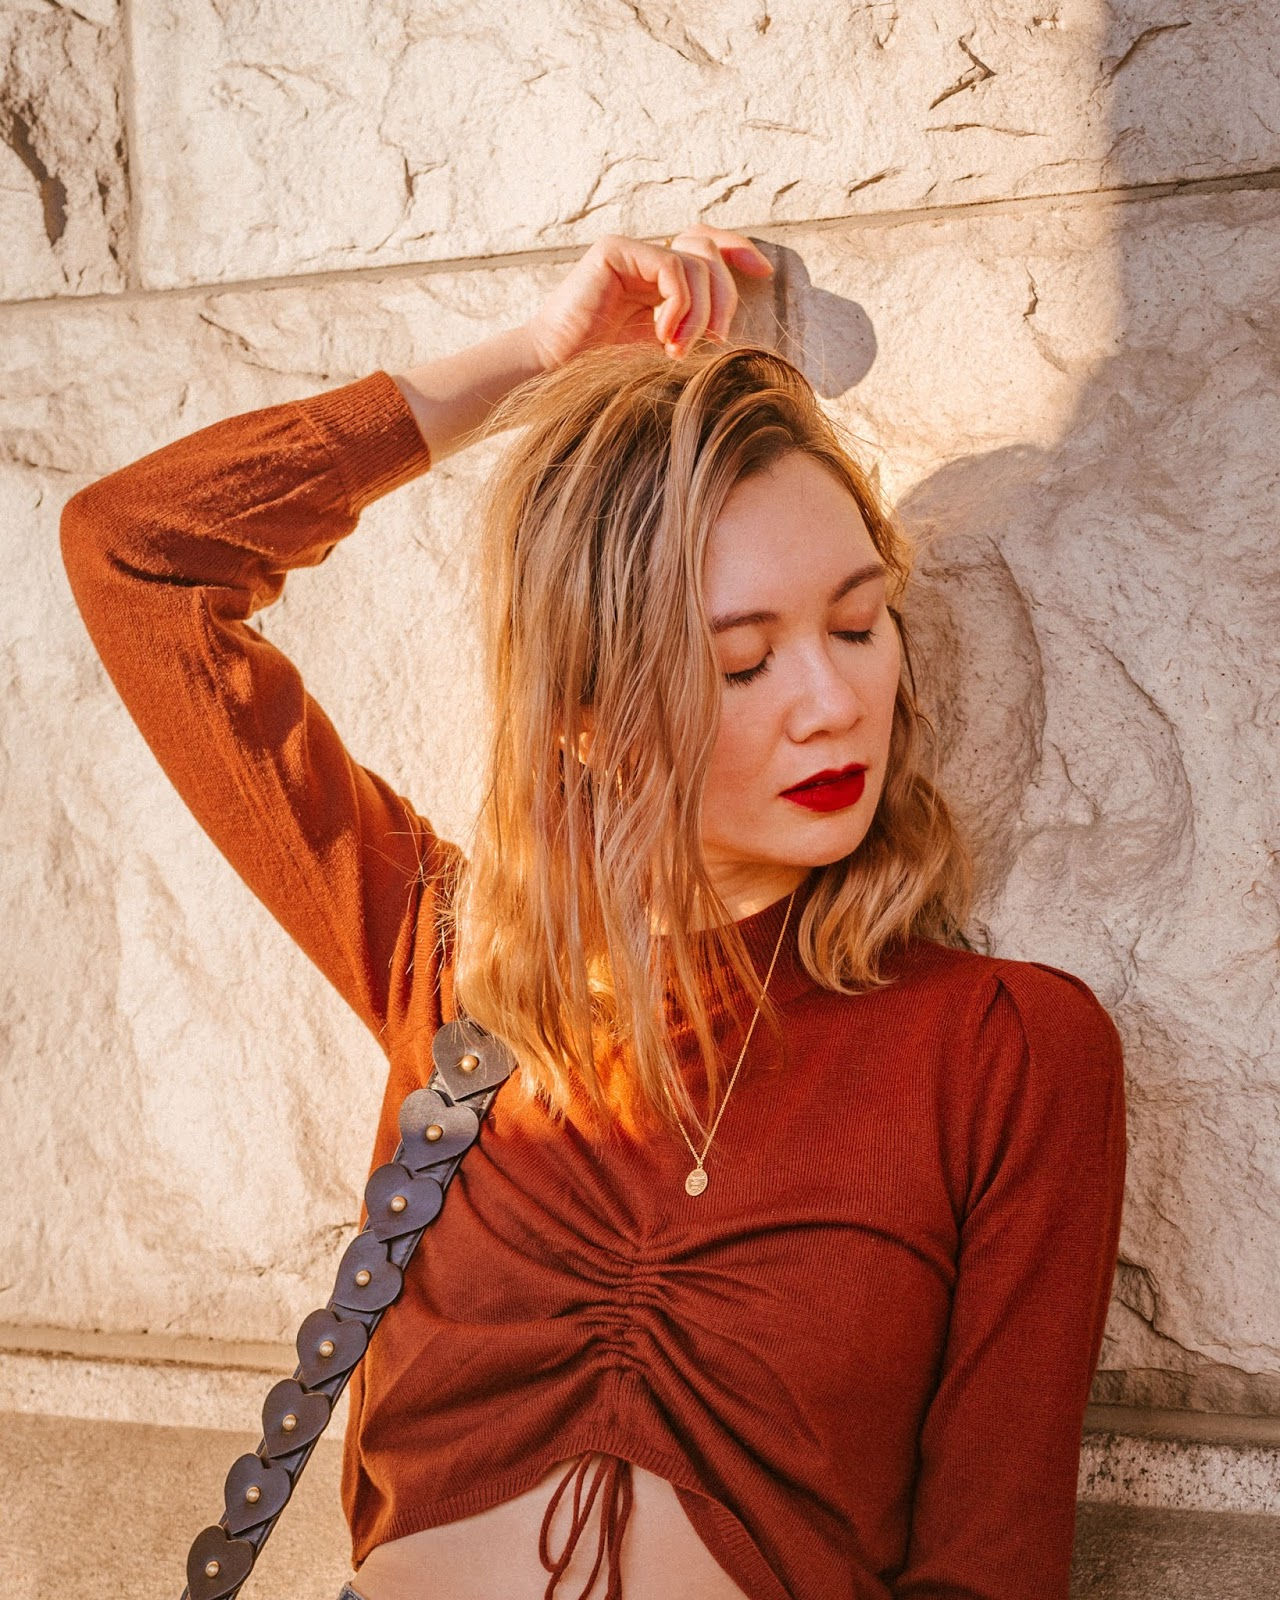 Camel tones, vancouver blogger, fall trends, fall 2018 trends, camel coat, cozy outfit for winter, fall outfit, fall style, canadian style, mejuri, tarot, canadian fashion blogger, chriselle lim collaction,  cropped sweater, rust tones,